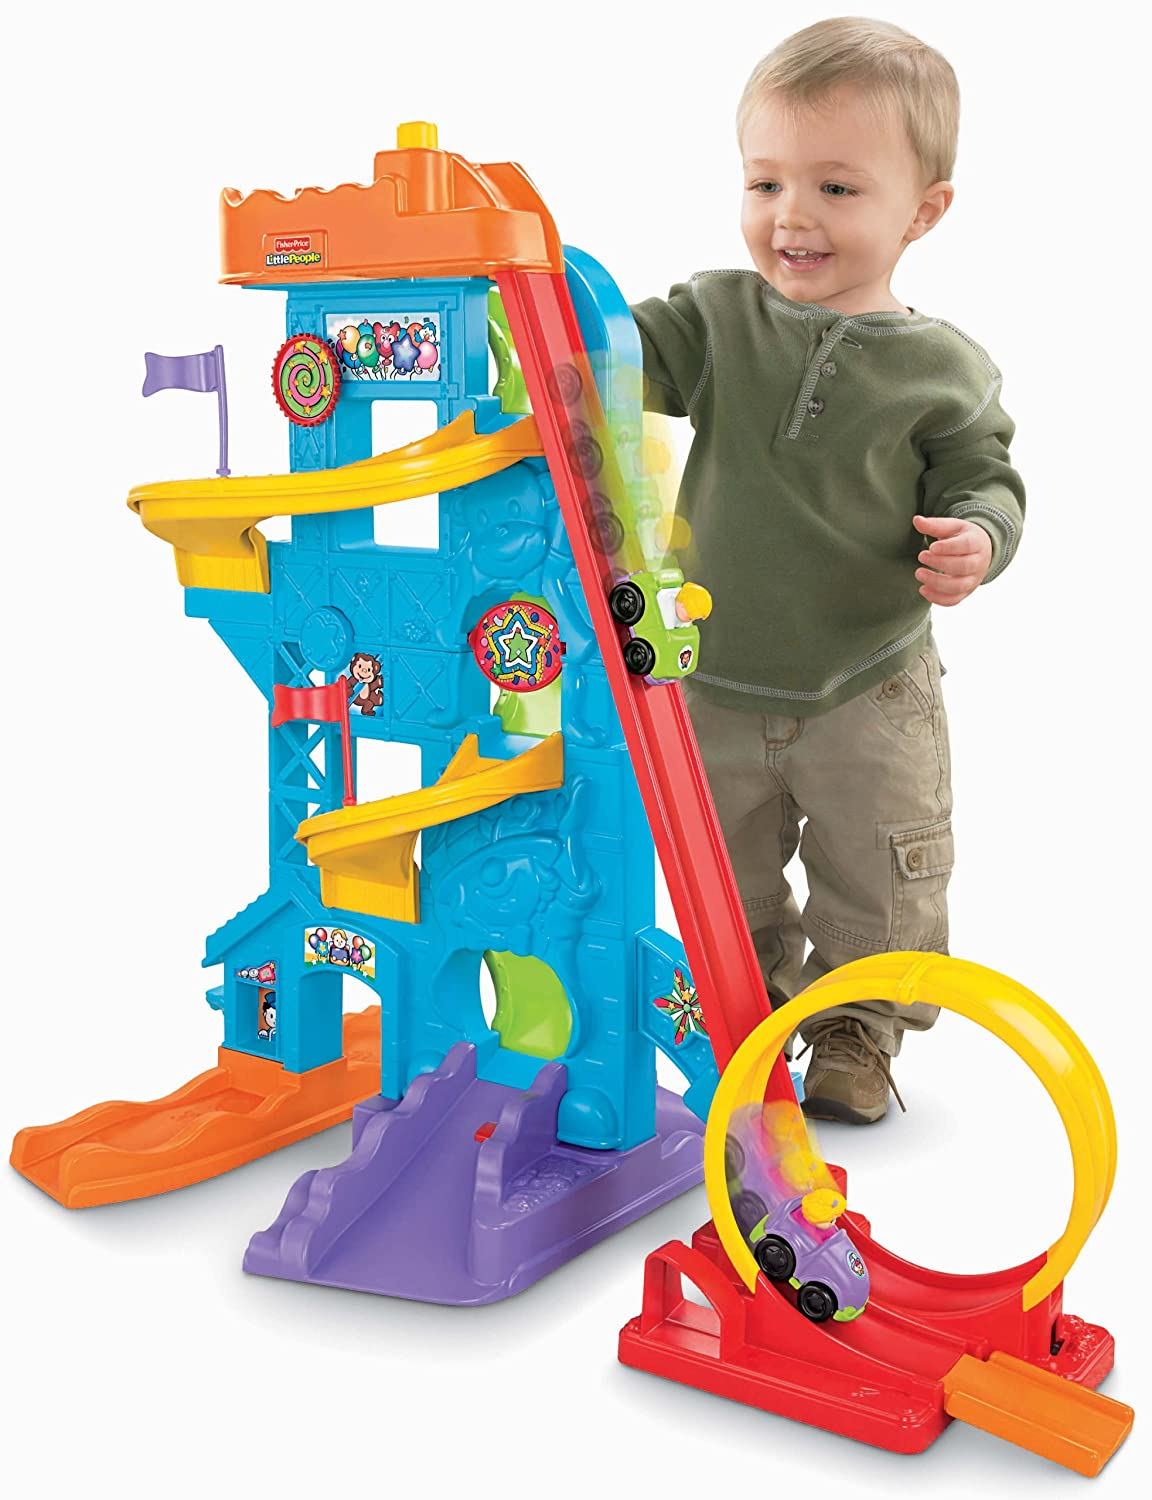 Toys For Old : Best gifts for year old boys in itsy bitsy fun